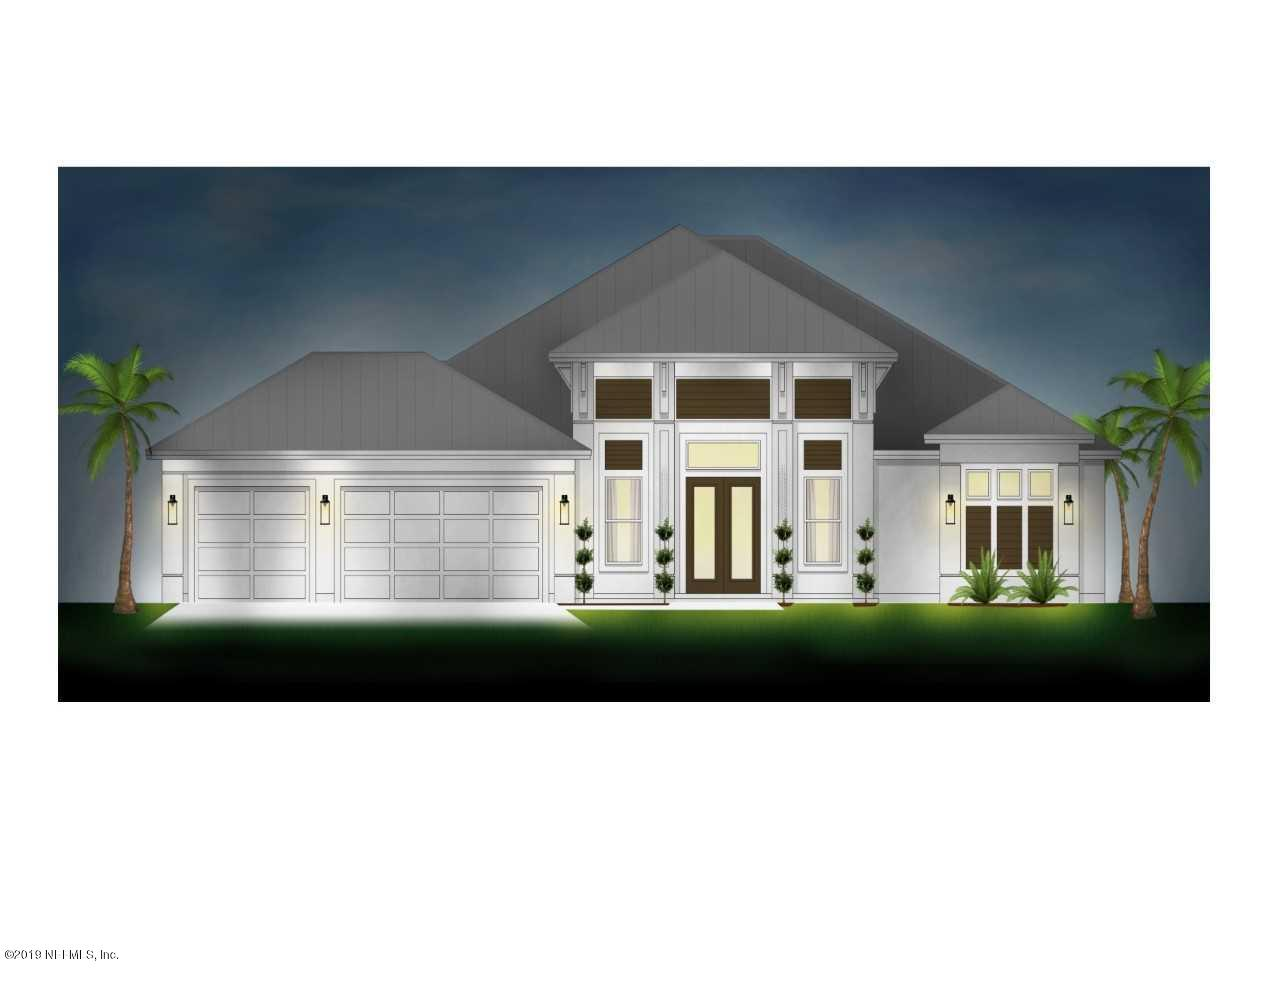 3317 SILVER PALM, JACKSONVILLE, FLORIDA 32250, 4 Bedrooms Bedrooms, ,3 BathroomsBathrooms,Residential - single family,For sale,SILVER PALM,994215